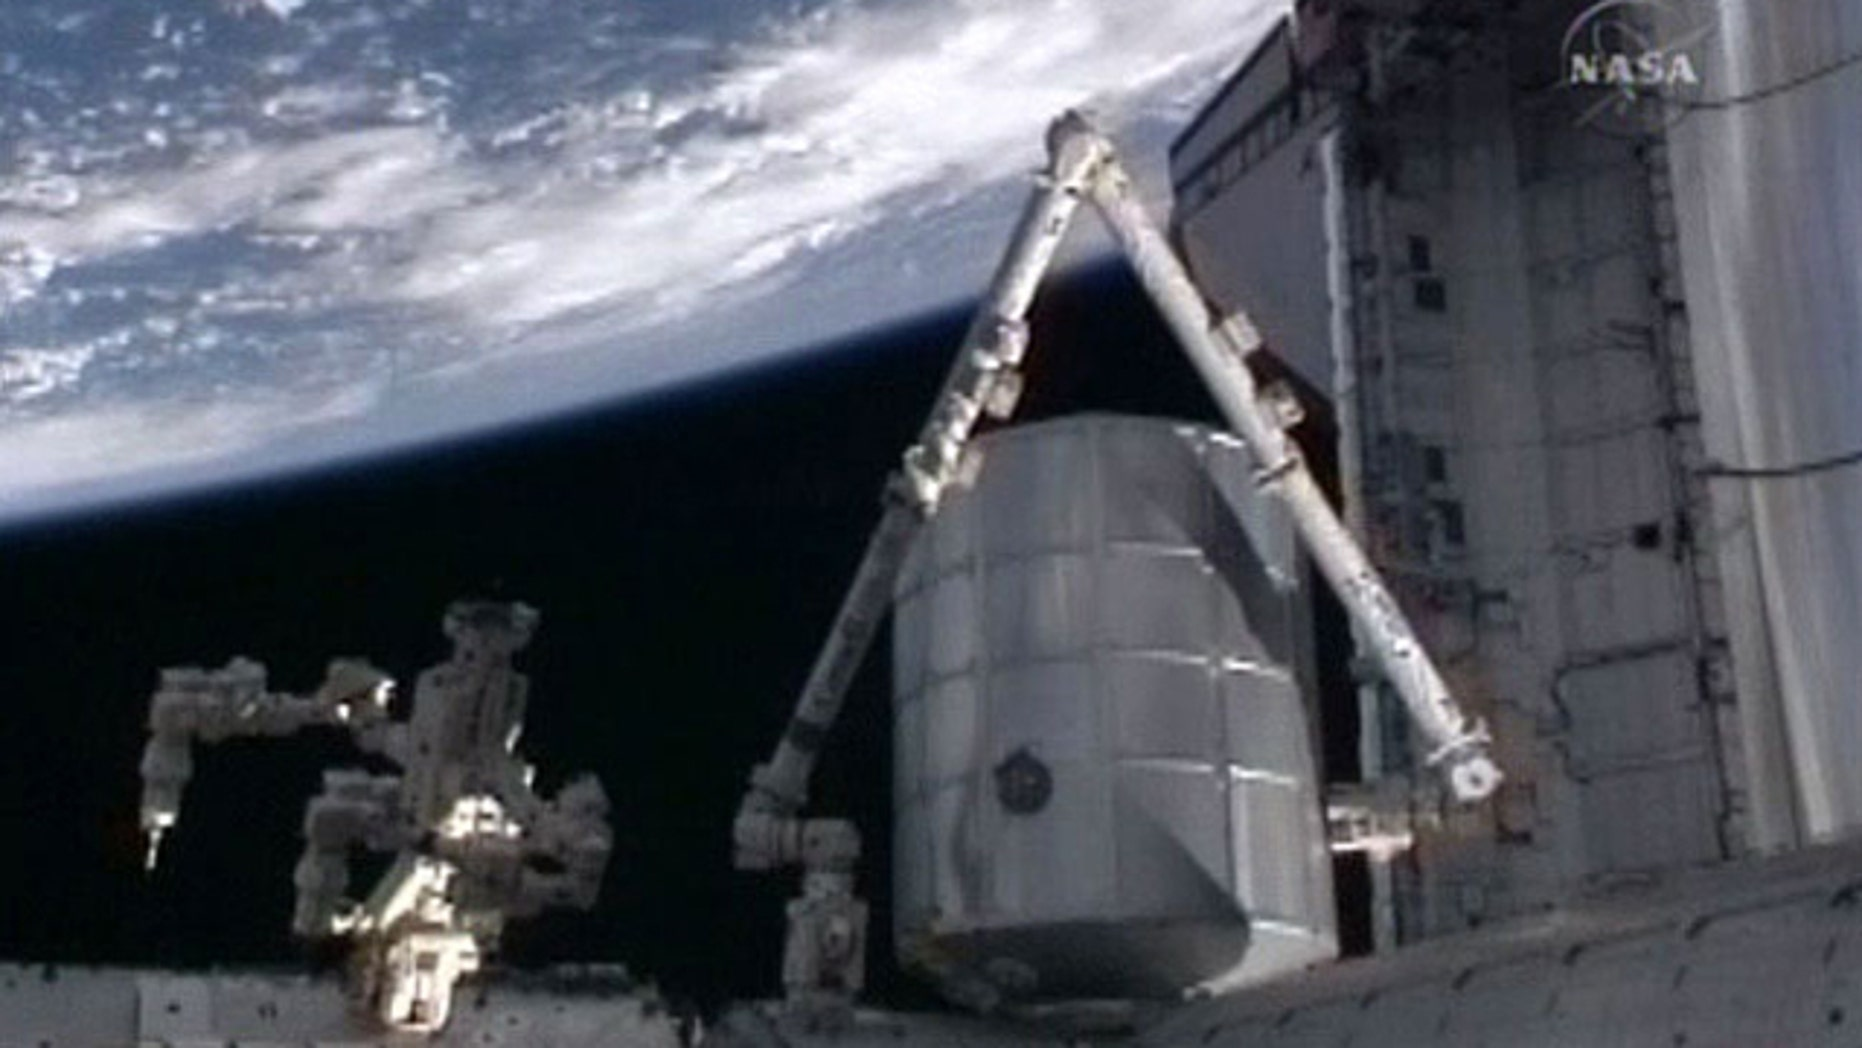 The cargo pod Leonardo, a multi-purpose logistics module for the International Space Station, is attached to the Earth-facing berth of the outpost's Harmony node on April 8, 2010 after being moved from shuttle Discovery's payload bay during the STS-131 mission.